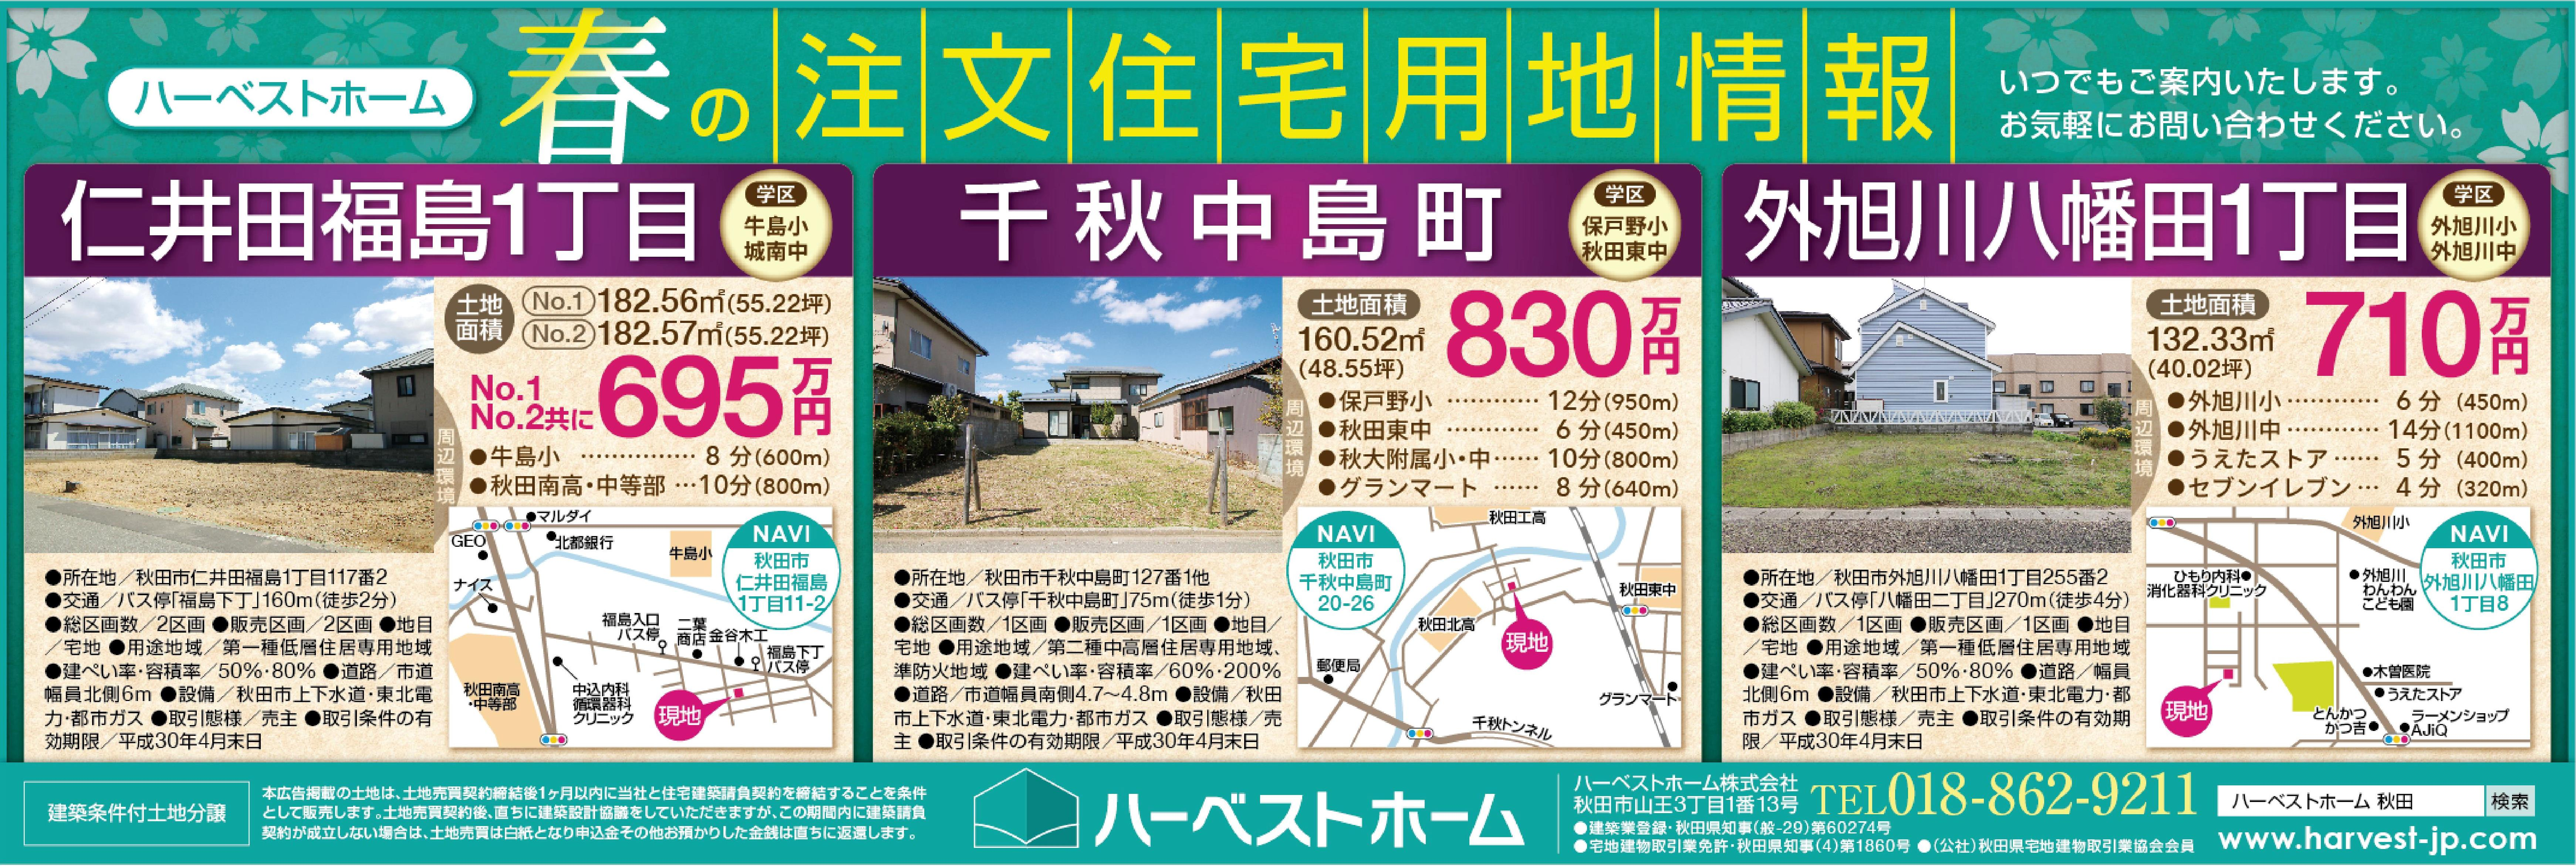 NEW / 注文住宅用の土地情報です。